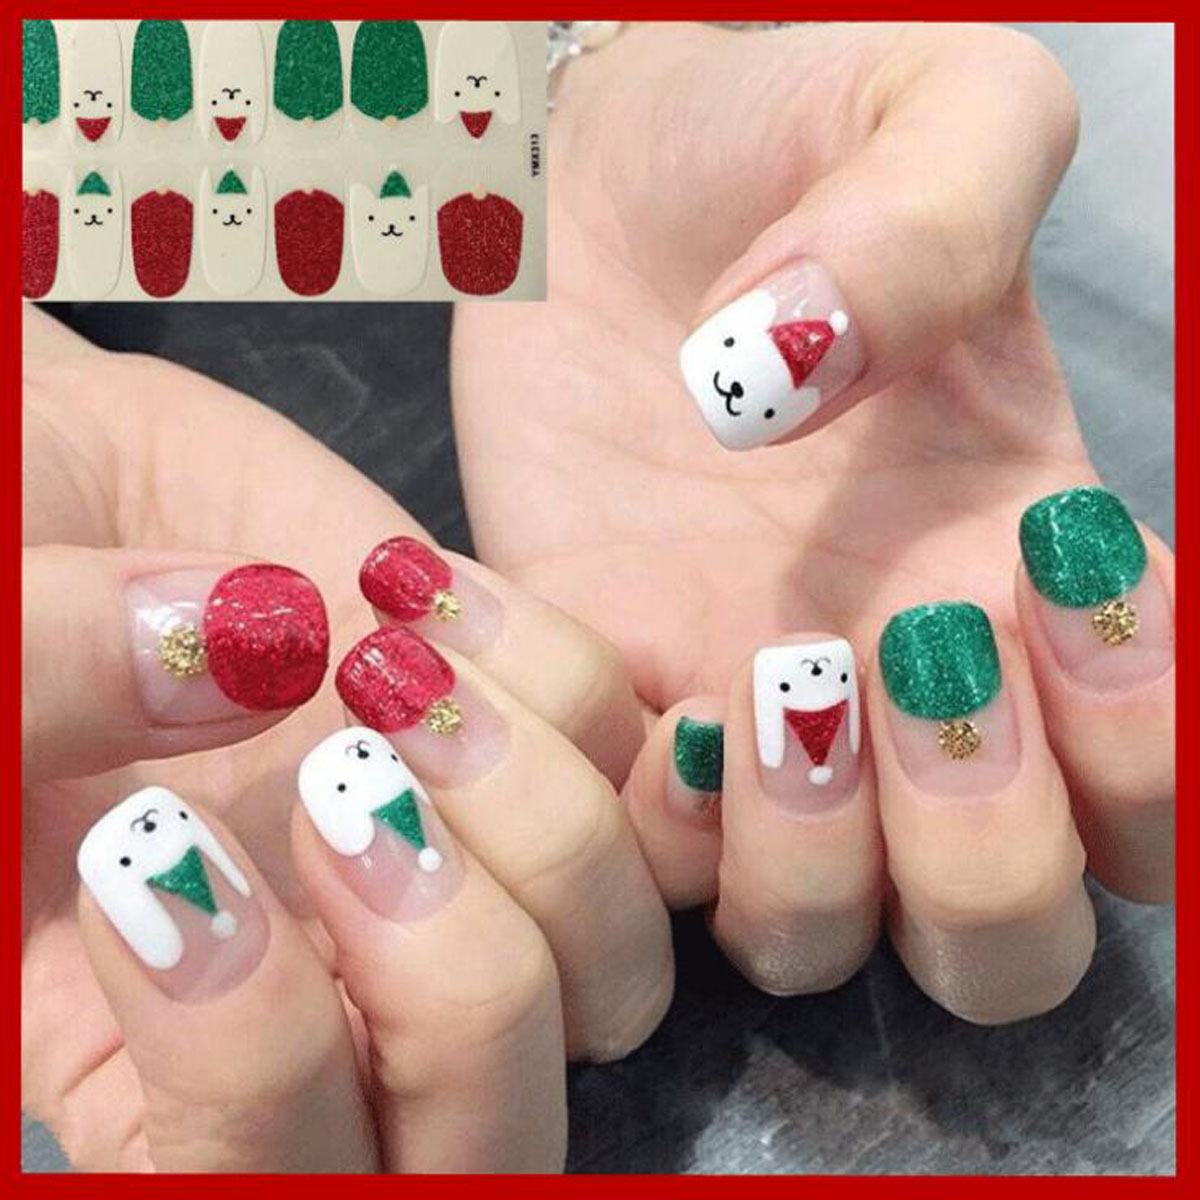 1sheet Beauty Nail Art Stickers Full Cover Wrap Nail Art Water Decals Transfer DIY Manicure Nail Decoration For Winter Christmas